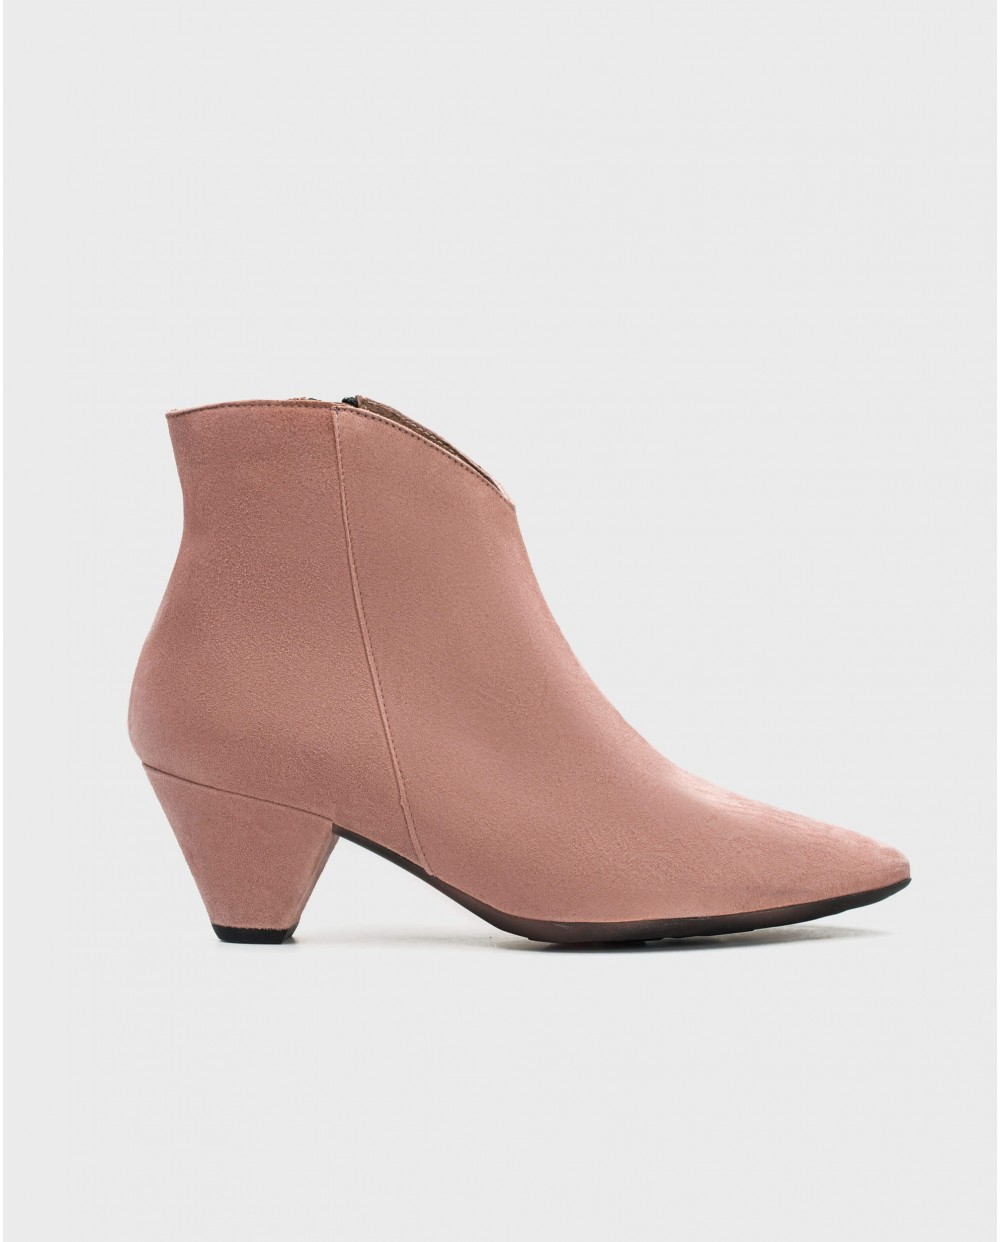 Wonders-Ankle Boots-Suede leather ankle boot with V cut